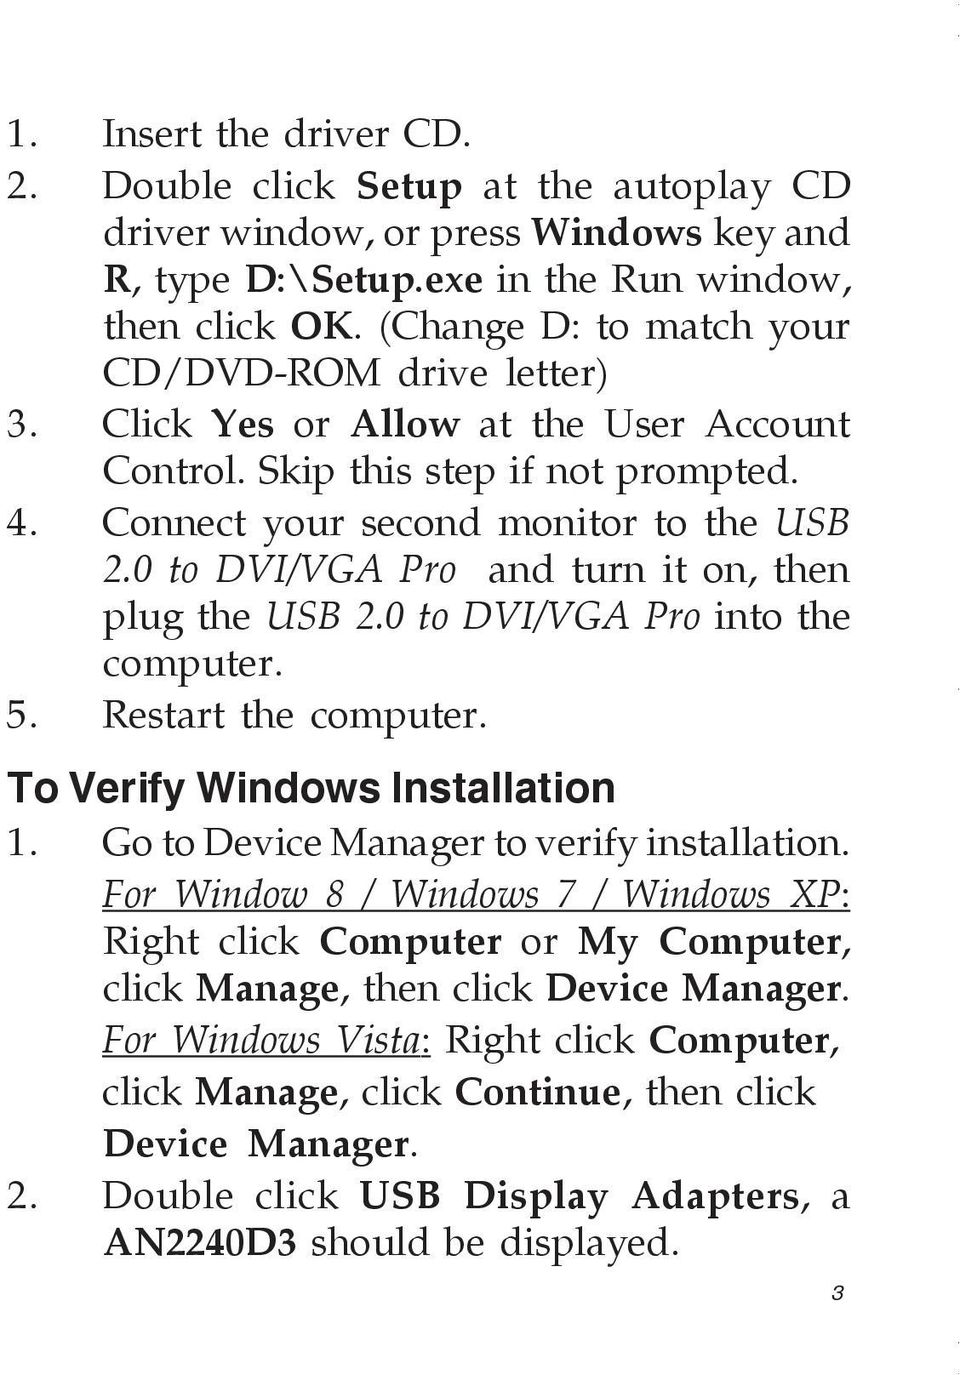 0 to DVI/VGA Pro and turn it on, then plug the USB 2.0 to DVI/VGA Pro into the computer. 5. Restart the computer. To Verify Windows Installation 1. Go to Device Manager to verify installation.